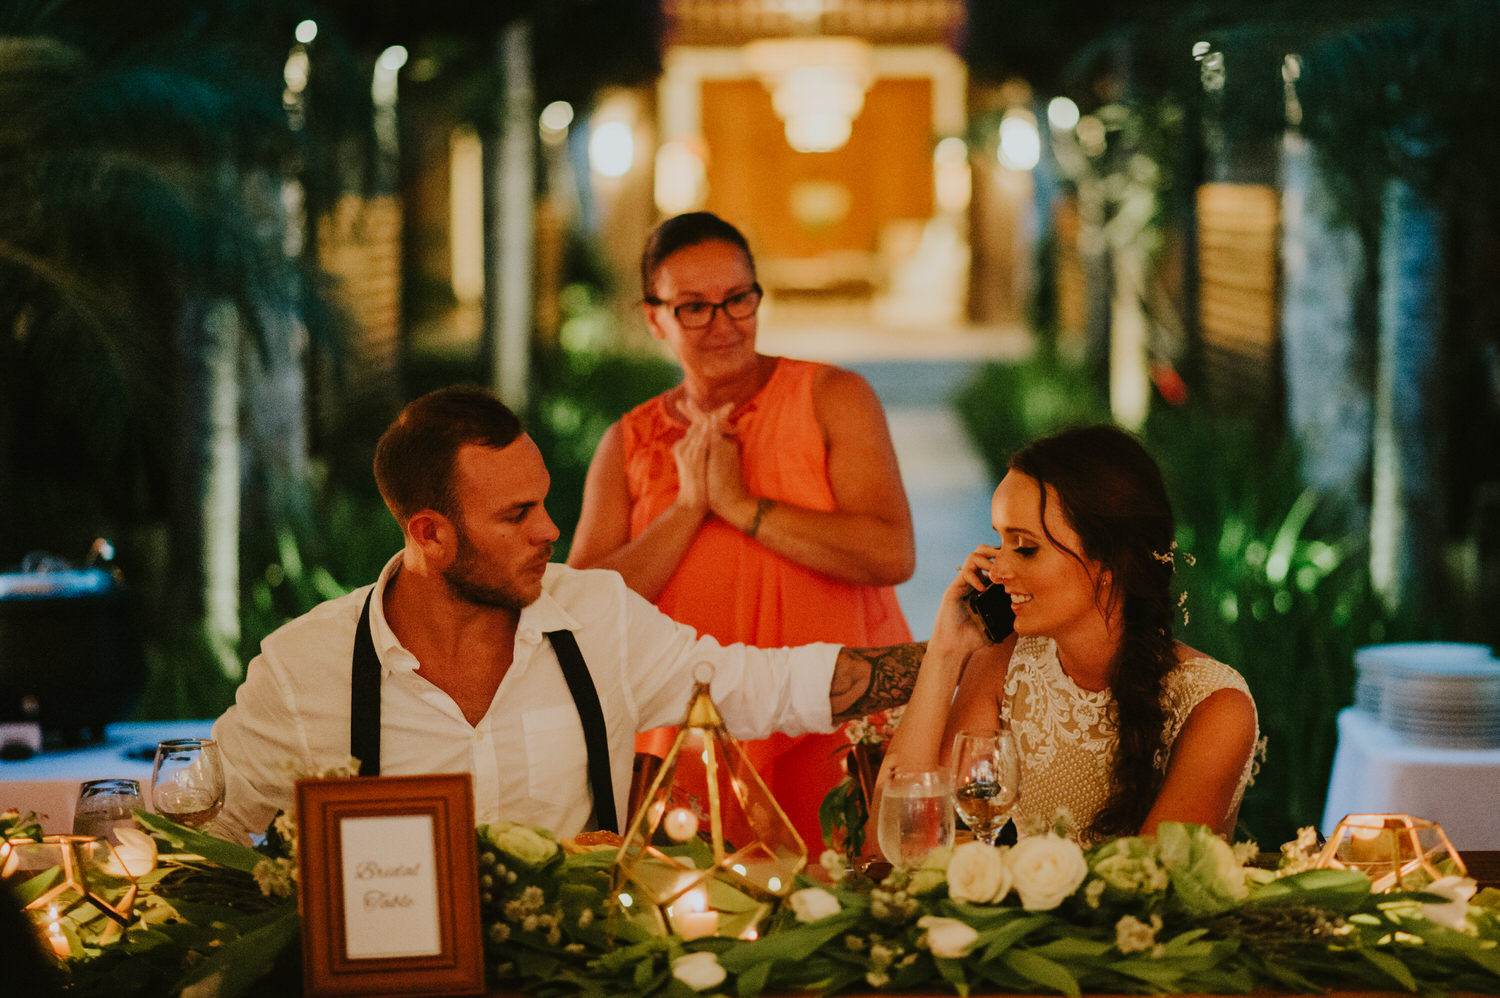 bali wedding destination - the ungasan wedding - bali wedding photographer - diktatphotography - aimee + blake wedding - 118